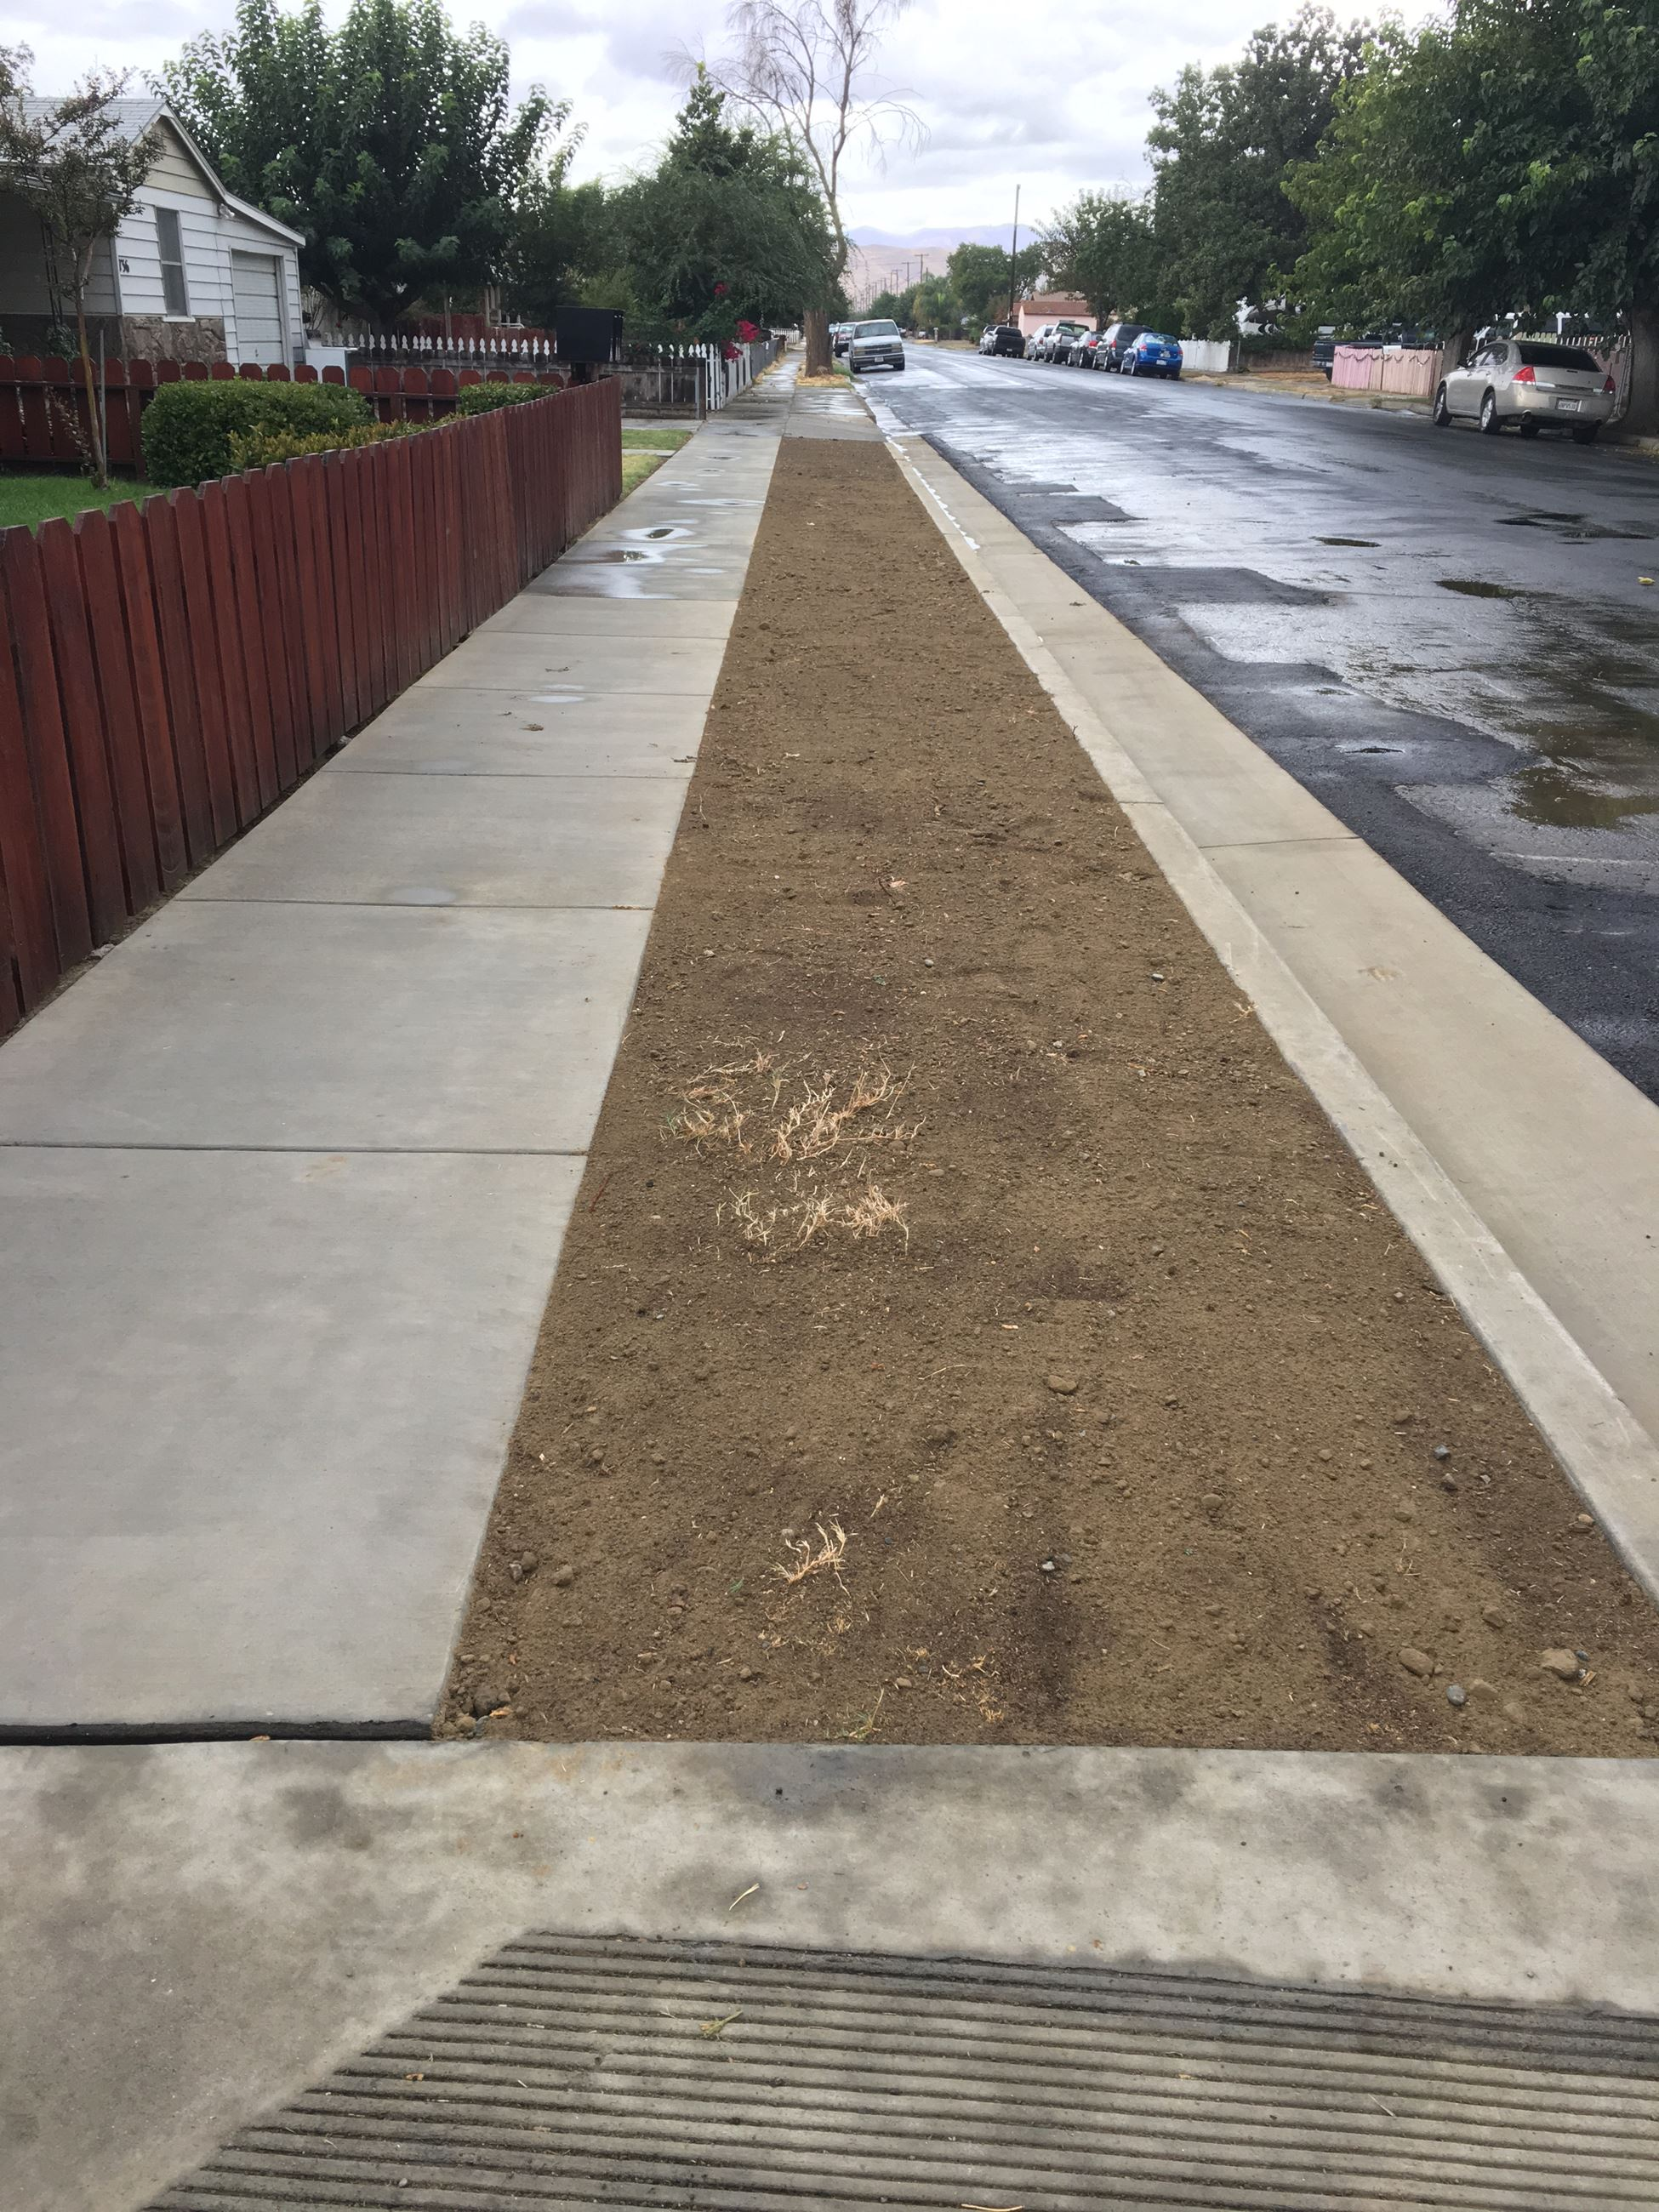 740 E Valley new sidewalk and median area